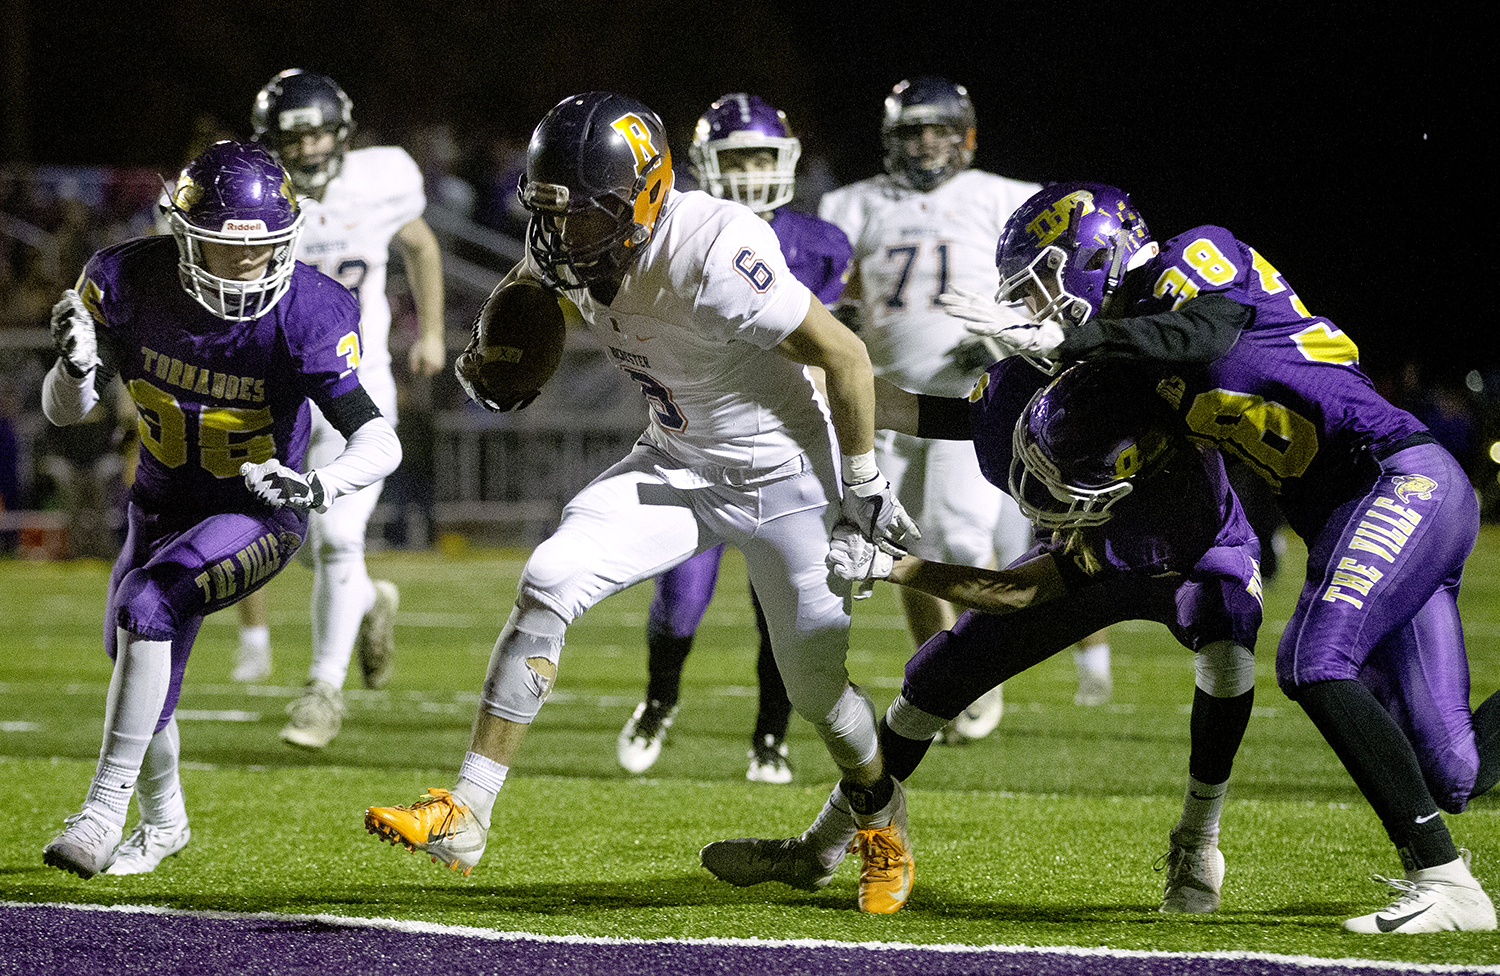 Rochester's Cade Eddington beats a trio of Taylorville defenders to the endzone during the Class 4A quarterfinals in Taylorville Saturday, Nov. 10, 2018. [Ted Schurter/The State Journal-Register]